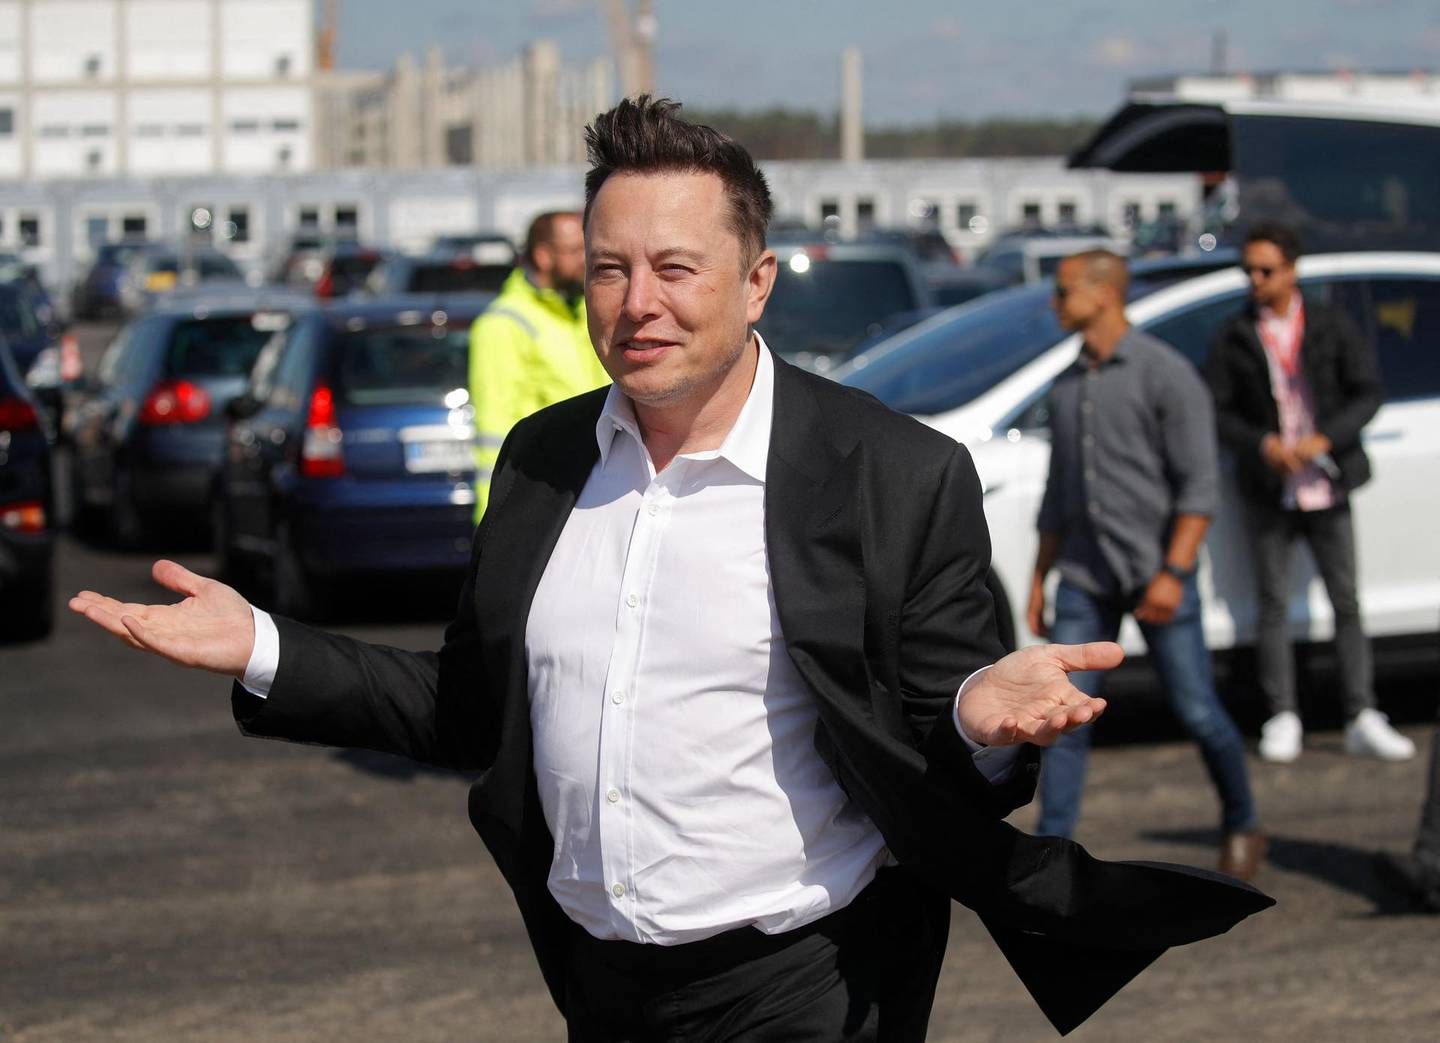 (FILES) In this file photo taken on September 3, 2020 Tesla CEO Elon Musk gestures as he arrives to visit the construction site of the future US electric car giant Tesla, in Gruenheide near Berlin. This week, Tesla boss Elon Musk criticized bitcoin's power consumption, particularly of energy produced from coal, and said he would no longer accept the cryptocurrency as payment for his electric cars. / AFP / Odd ANDERSEN